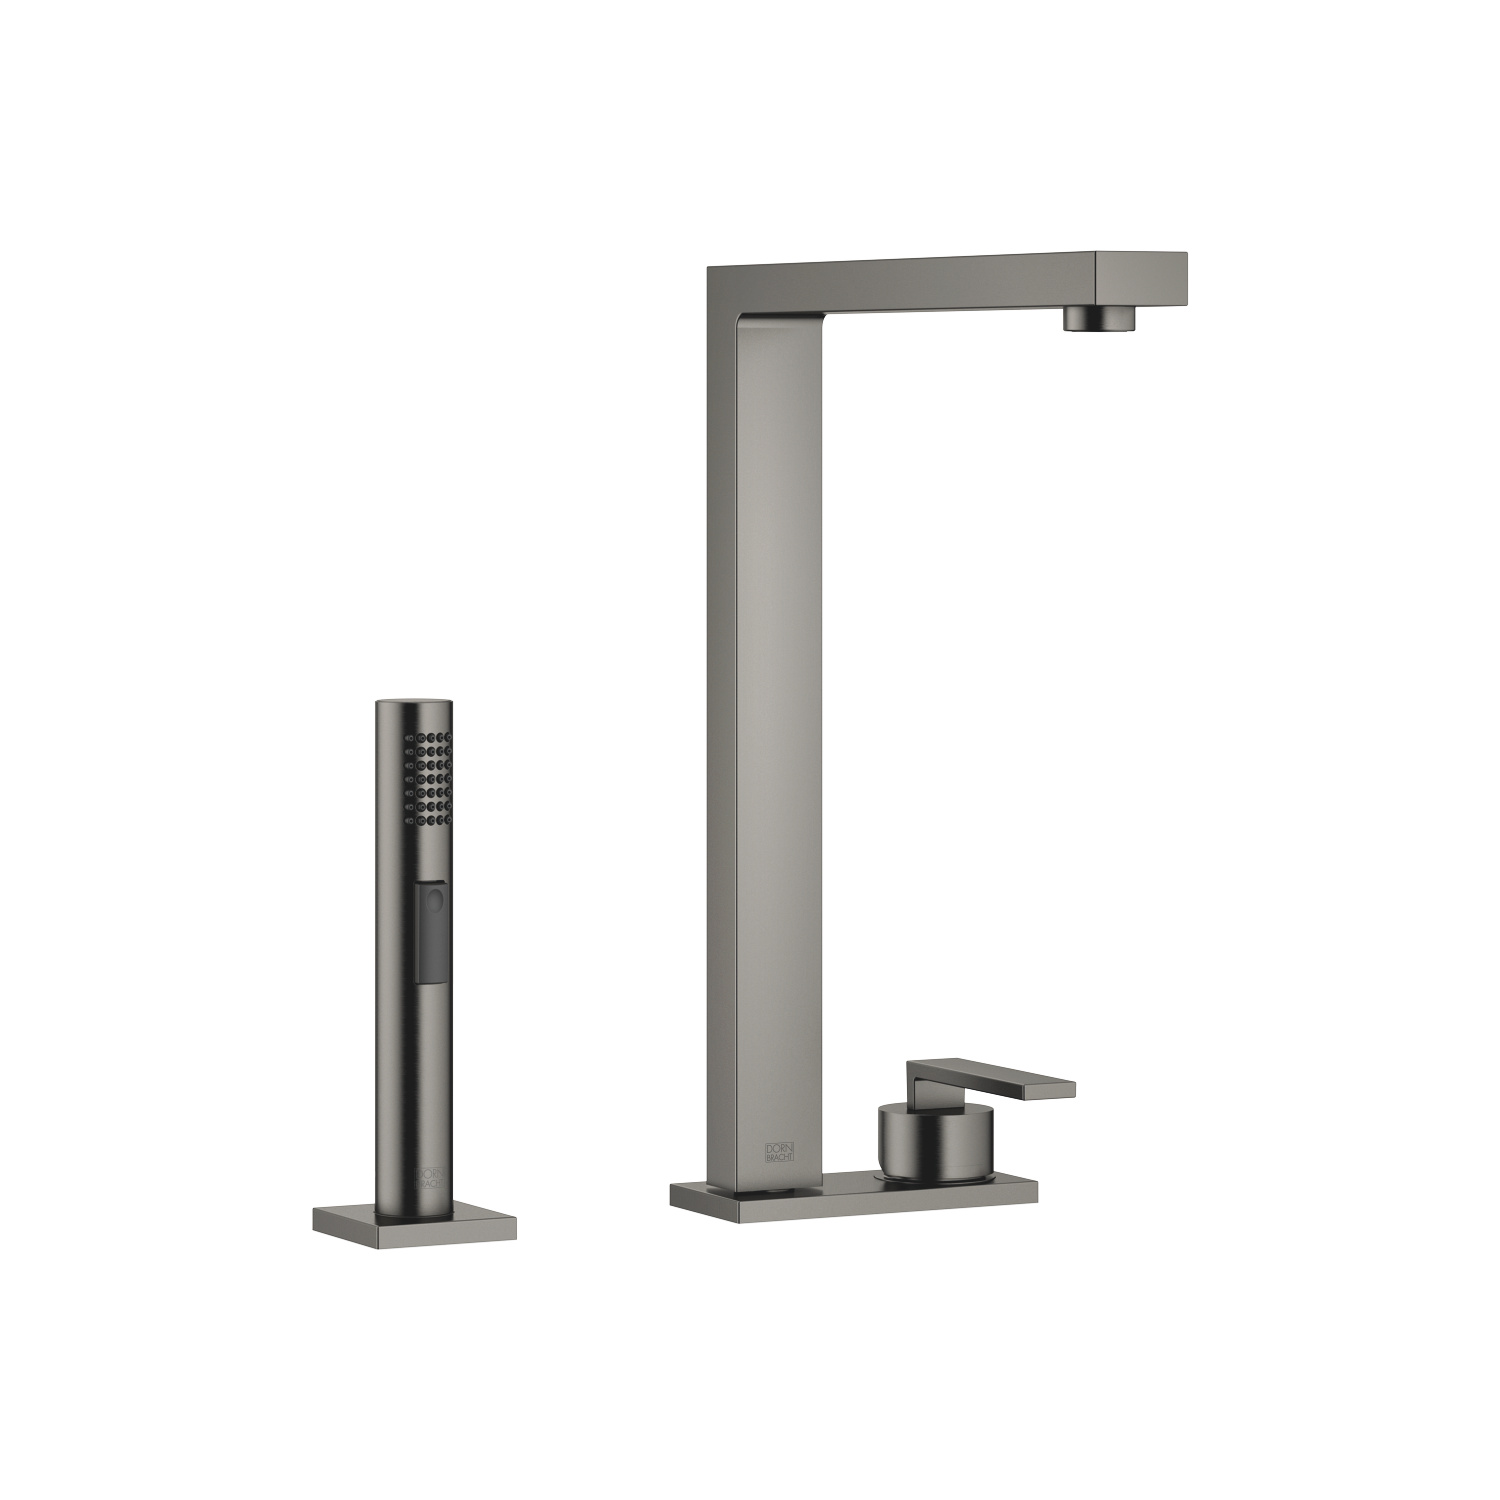 Two-hole mixer with cover plate with side spray set - Dark Platinum matte